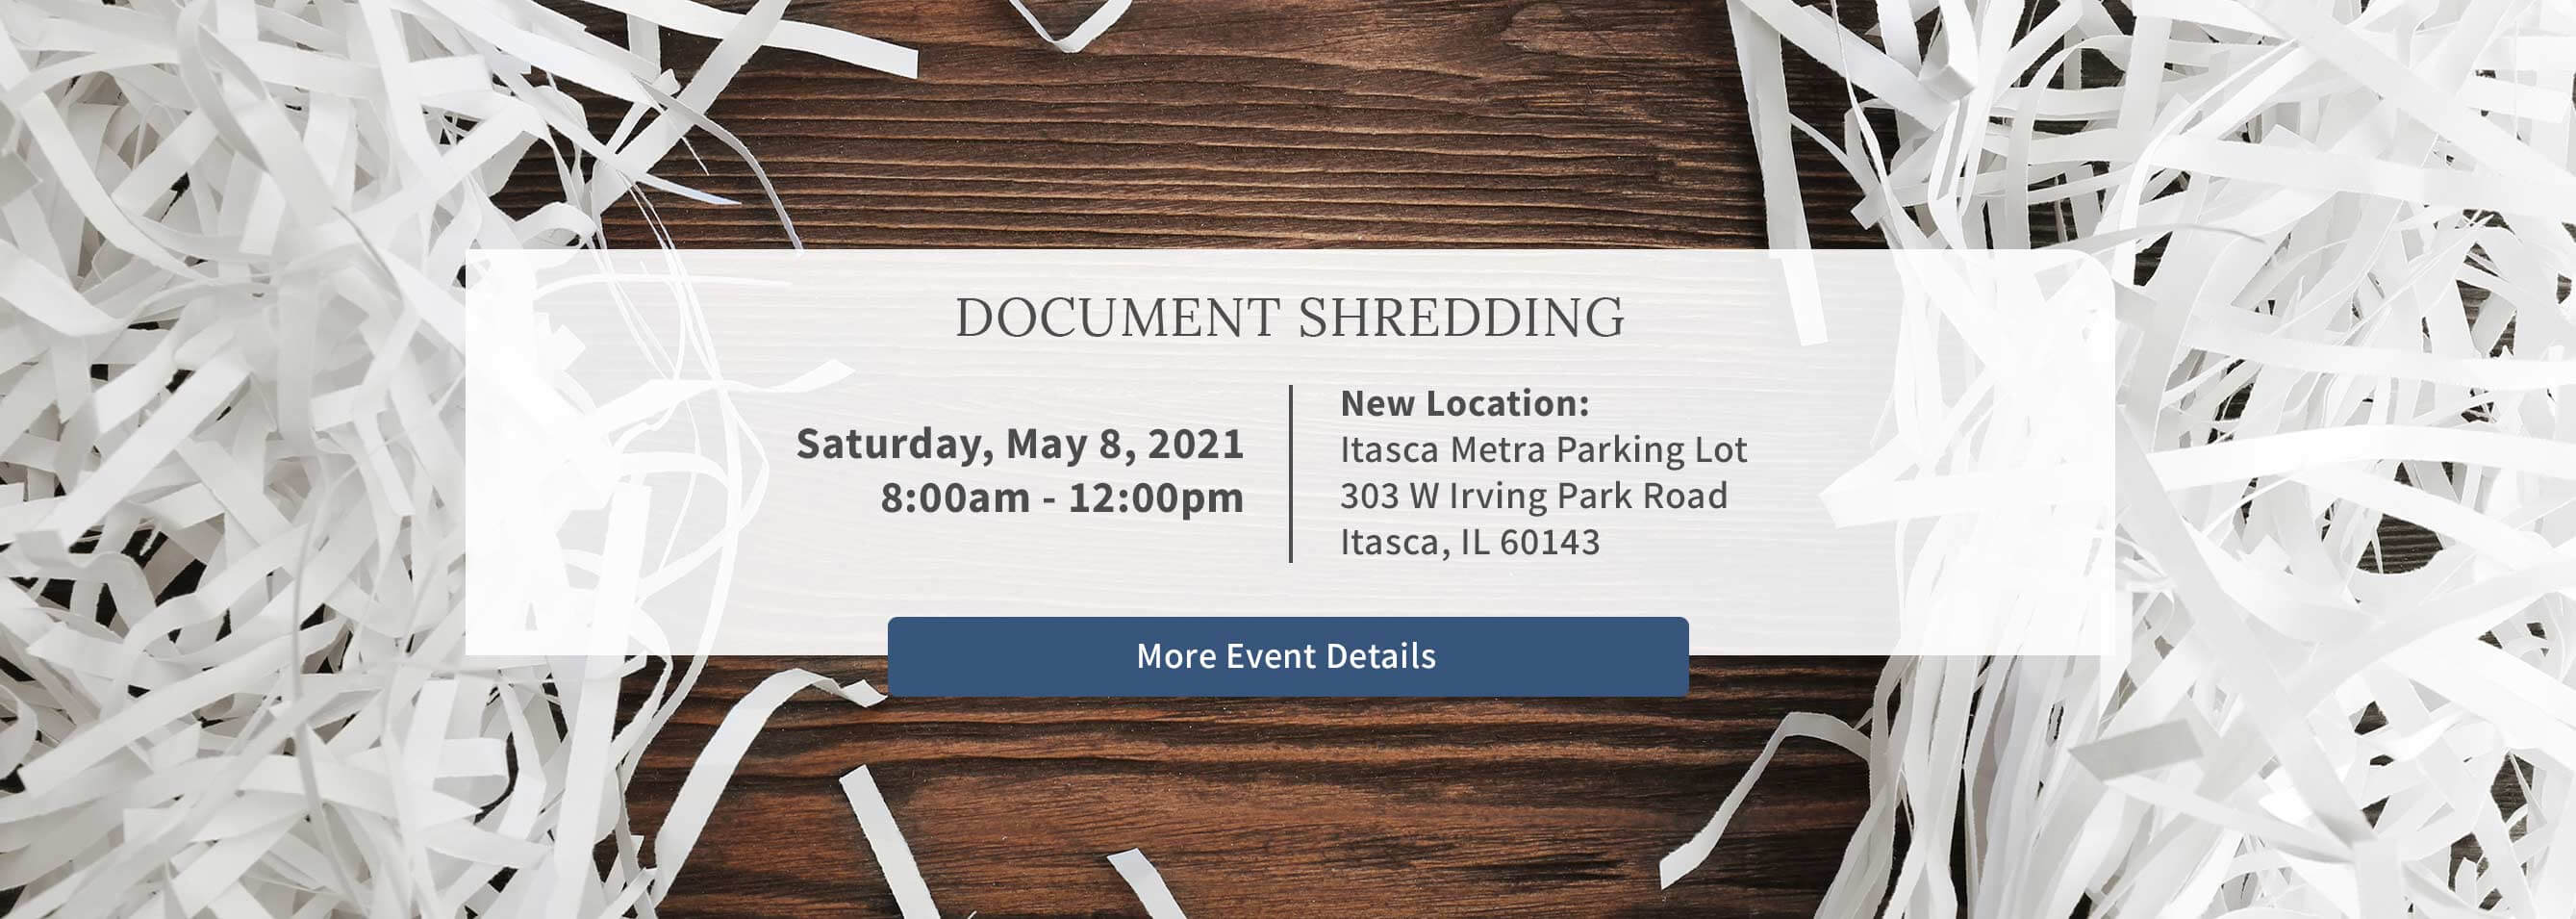 Document Shredding Saturday, May 8, 2021 8am - 12pm New location Itasca Metra Parking Lot 303 W Irving Park Road Itasca, IL 60143